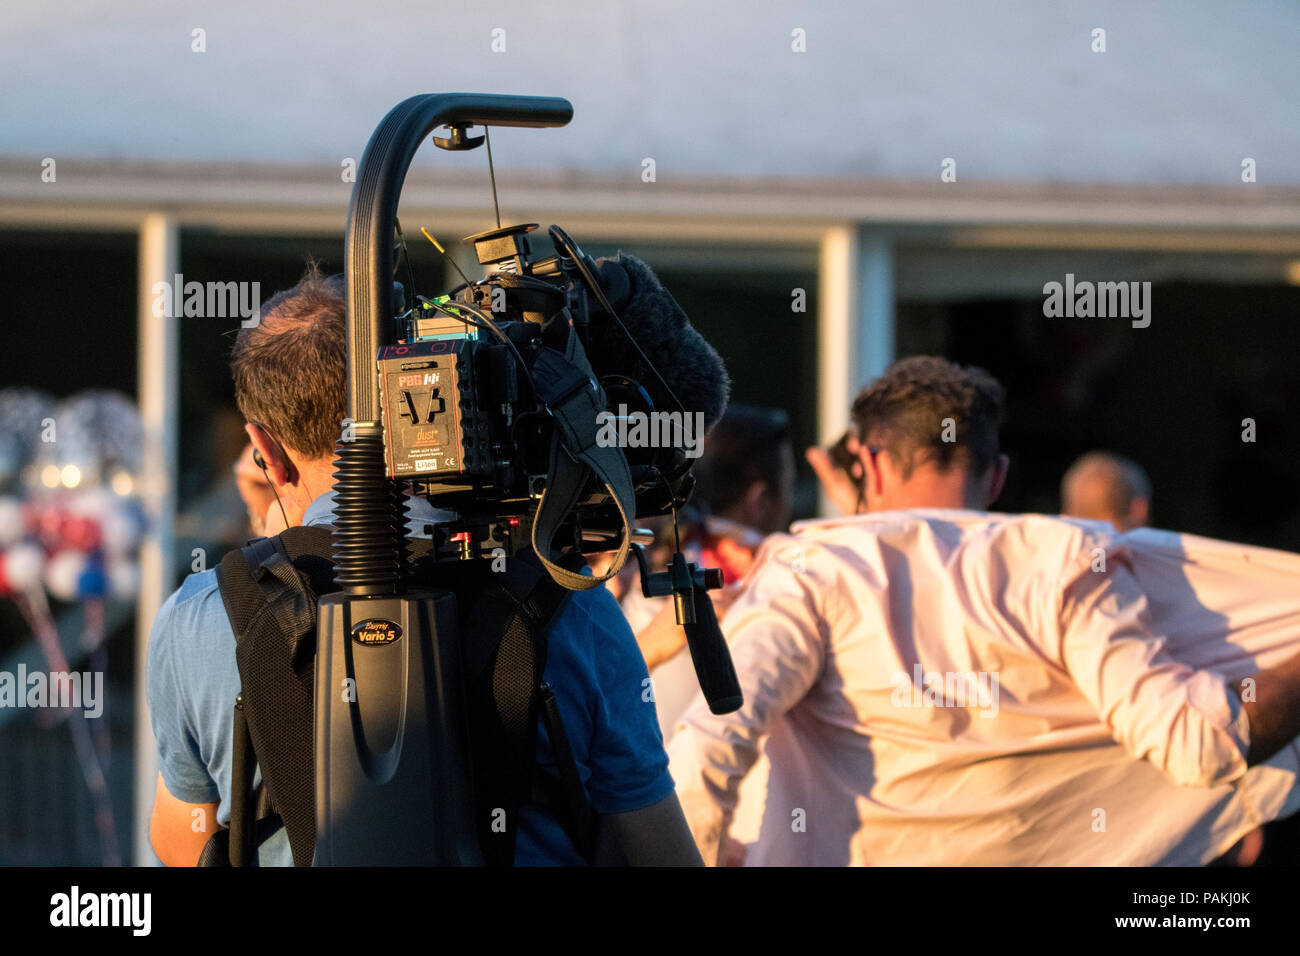 Windsor Racecourse, UK. 23 July 2018 - Cast and crew of new ITV show 'Absolutely Ascot' record at Windsor Racecourse. The casted women could be seen and heard arguing with each other loudly during recording. Credit: Benjamin Wareing/Alamy Live News - Stock Image